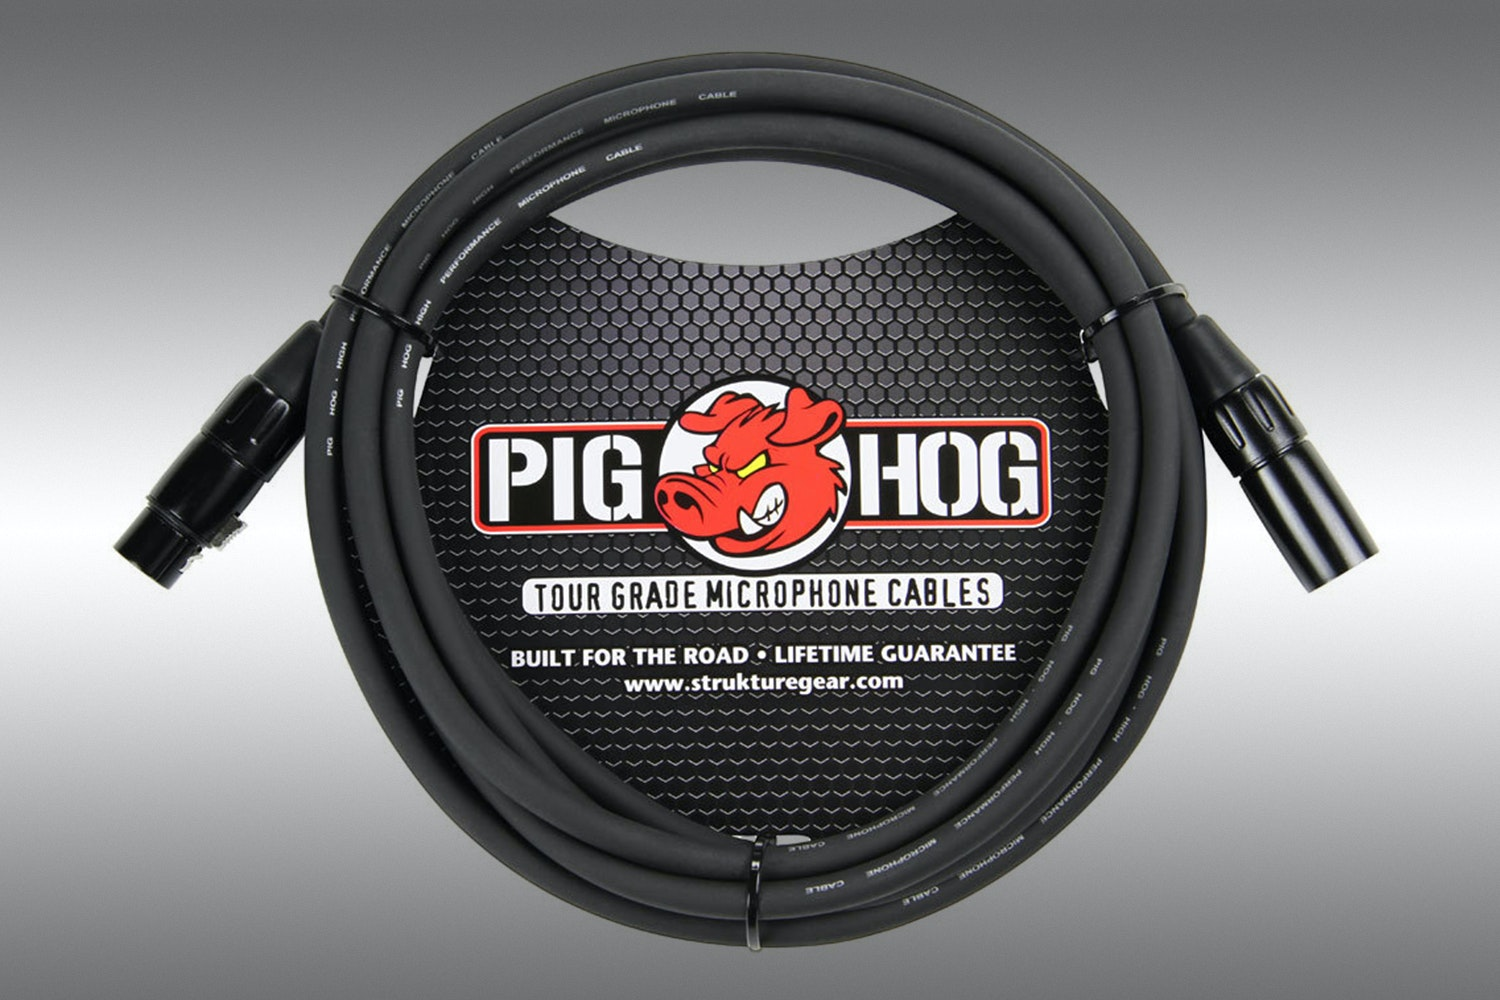 Pig Hog 8mm Microphone Cable